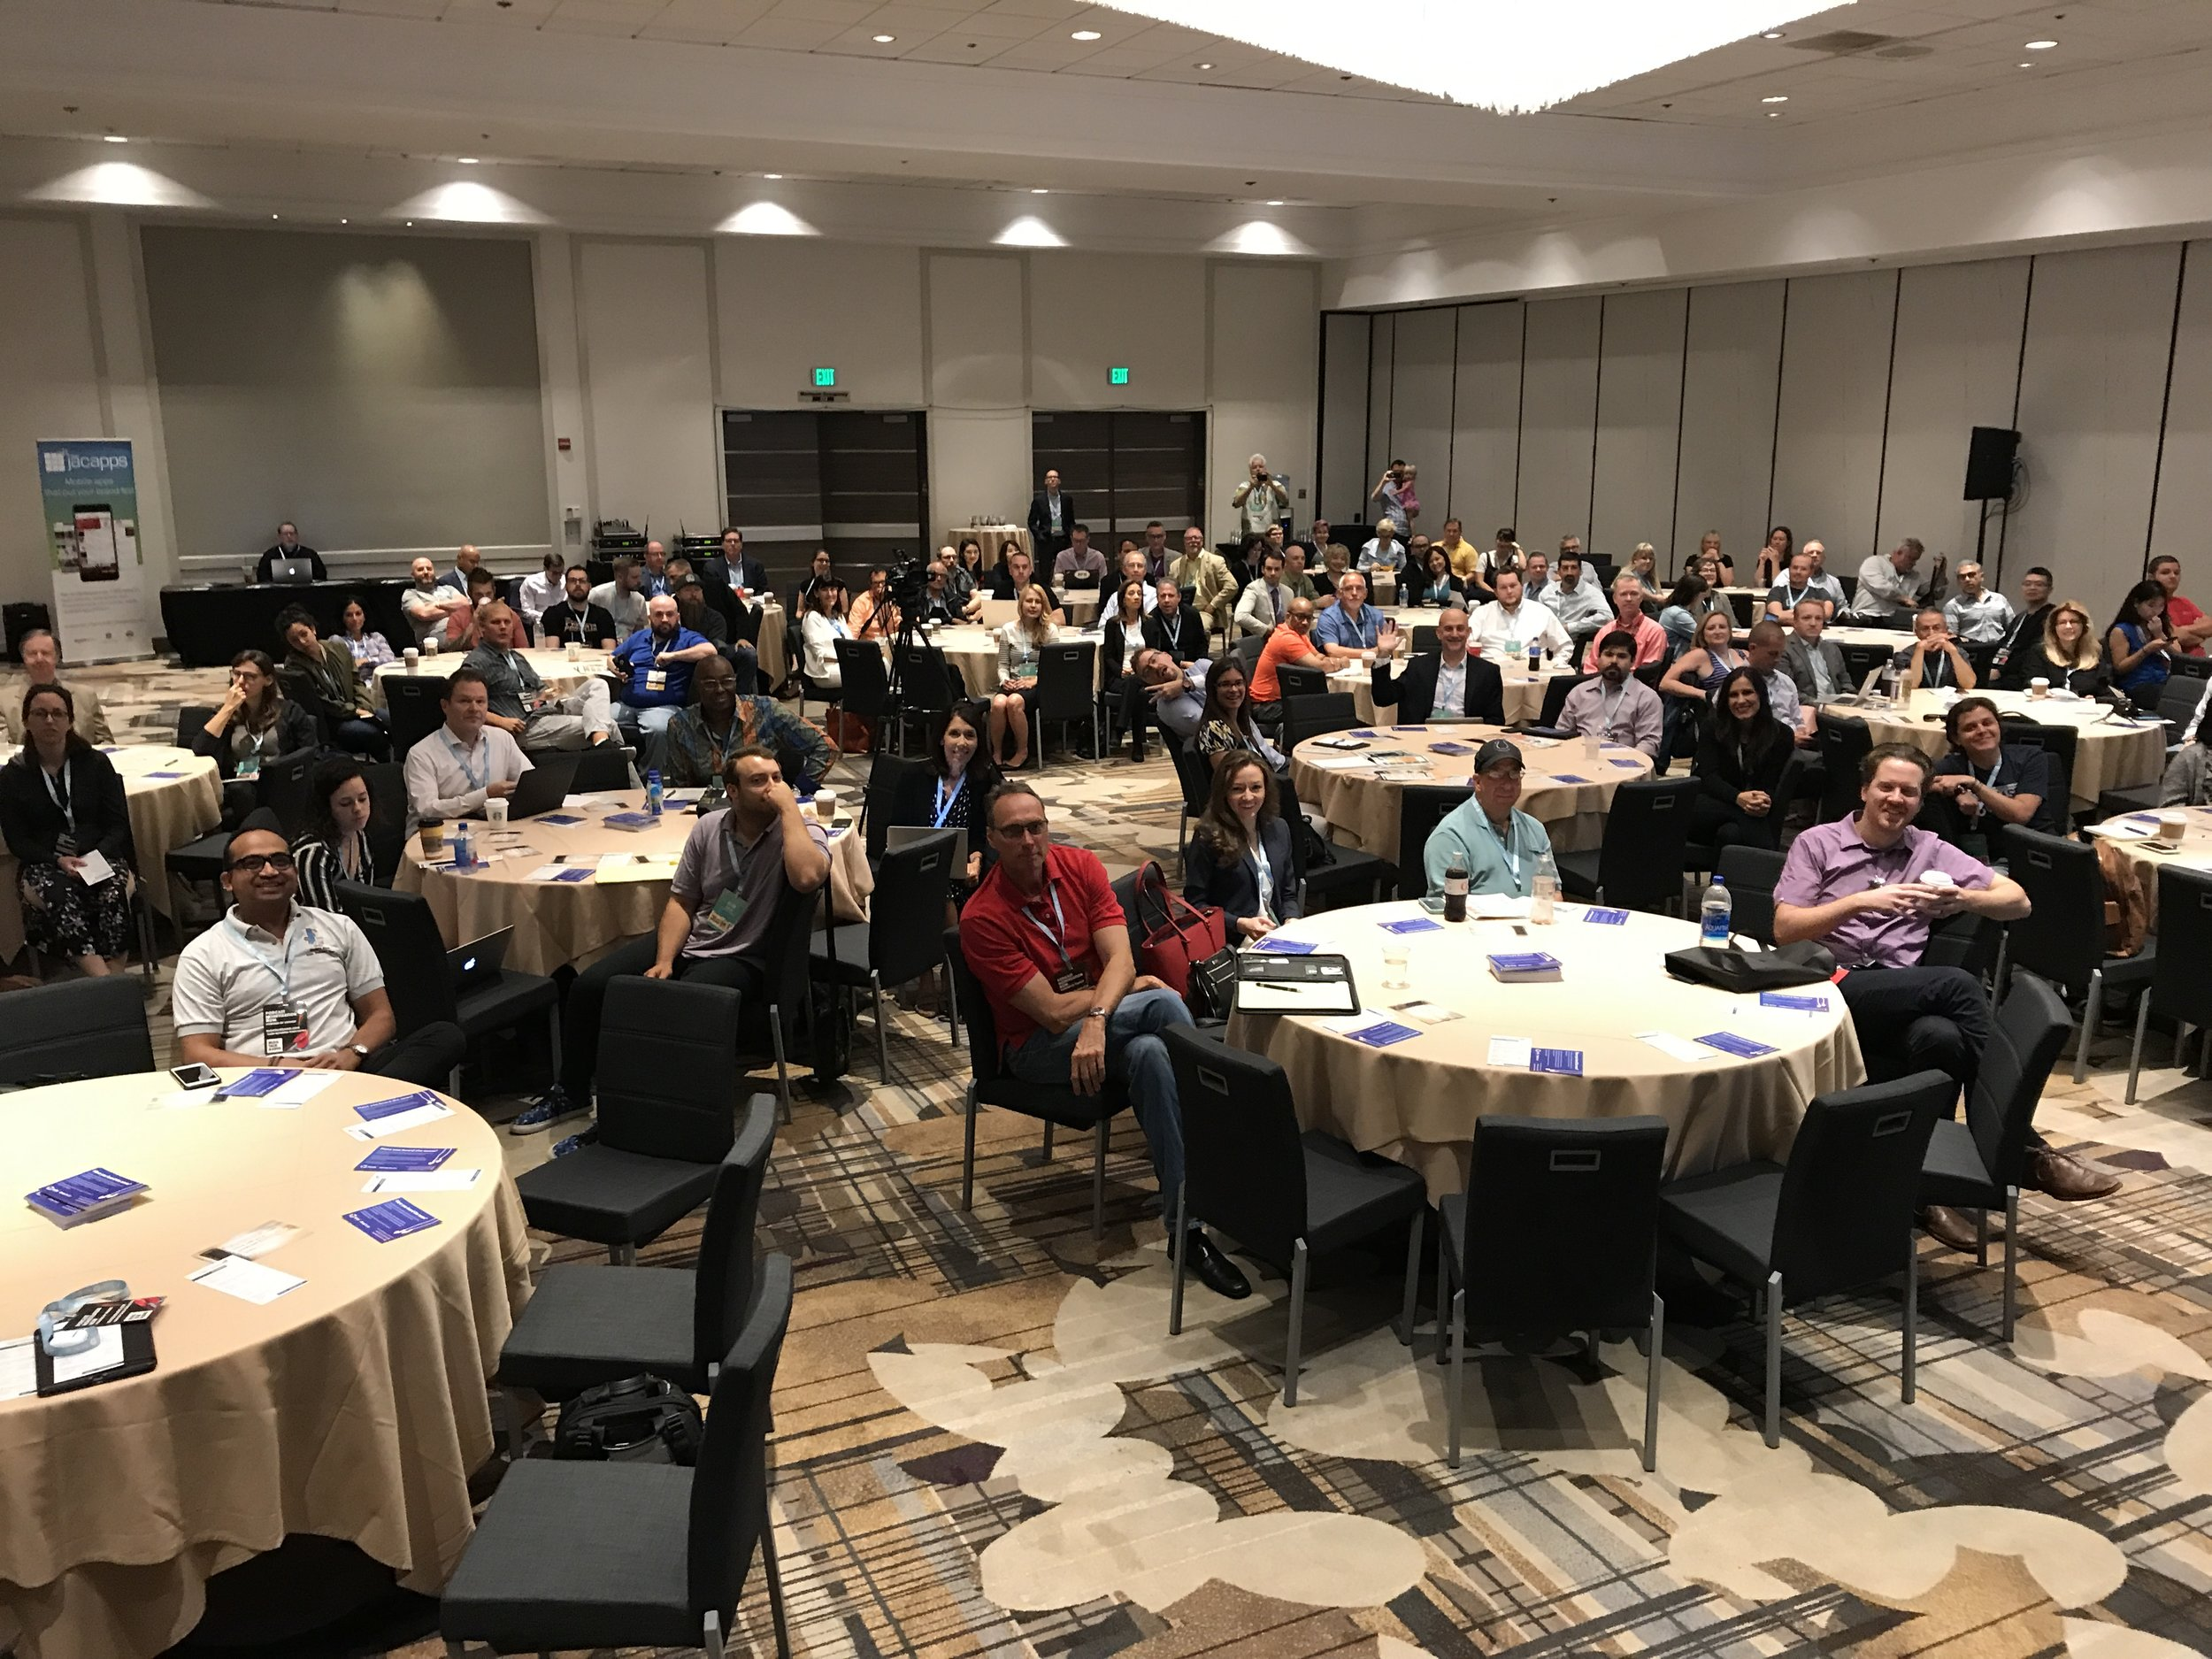 """A full room of radio people at Jacobs Media hosted """"Broadcasters Meets Podcasters"""" track"""